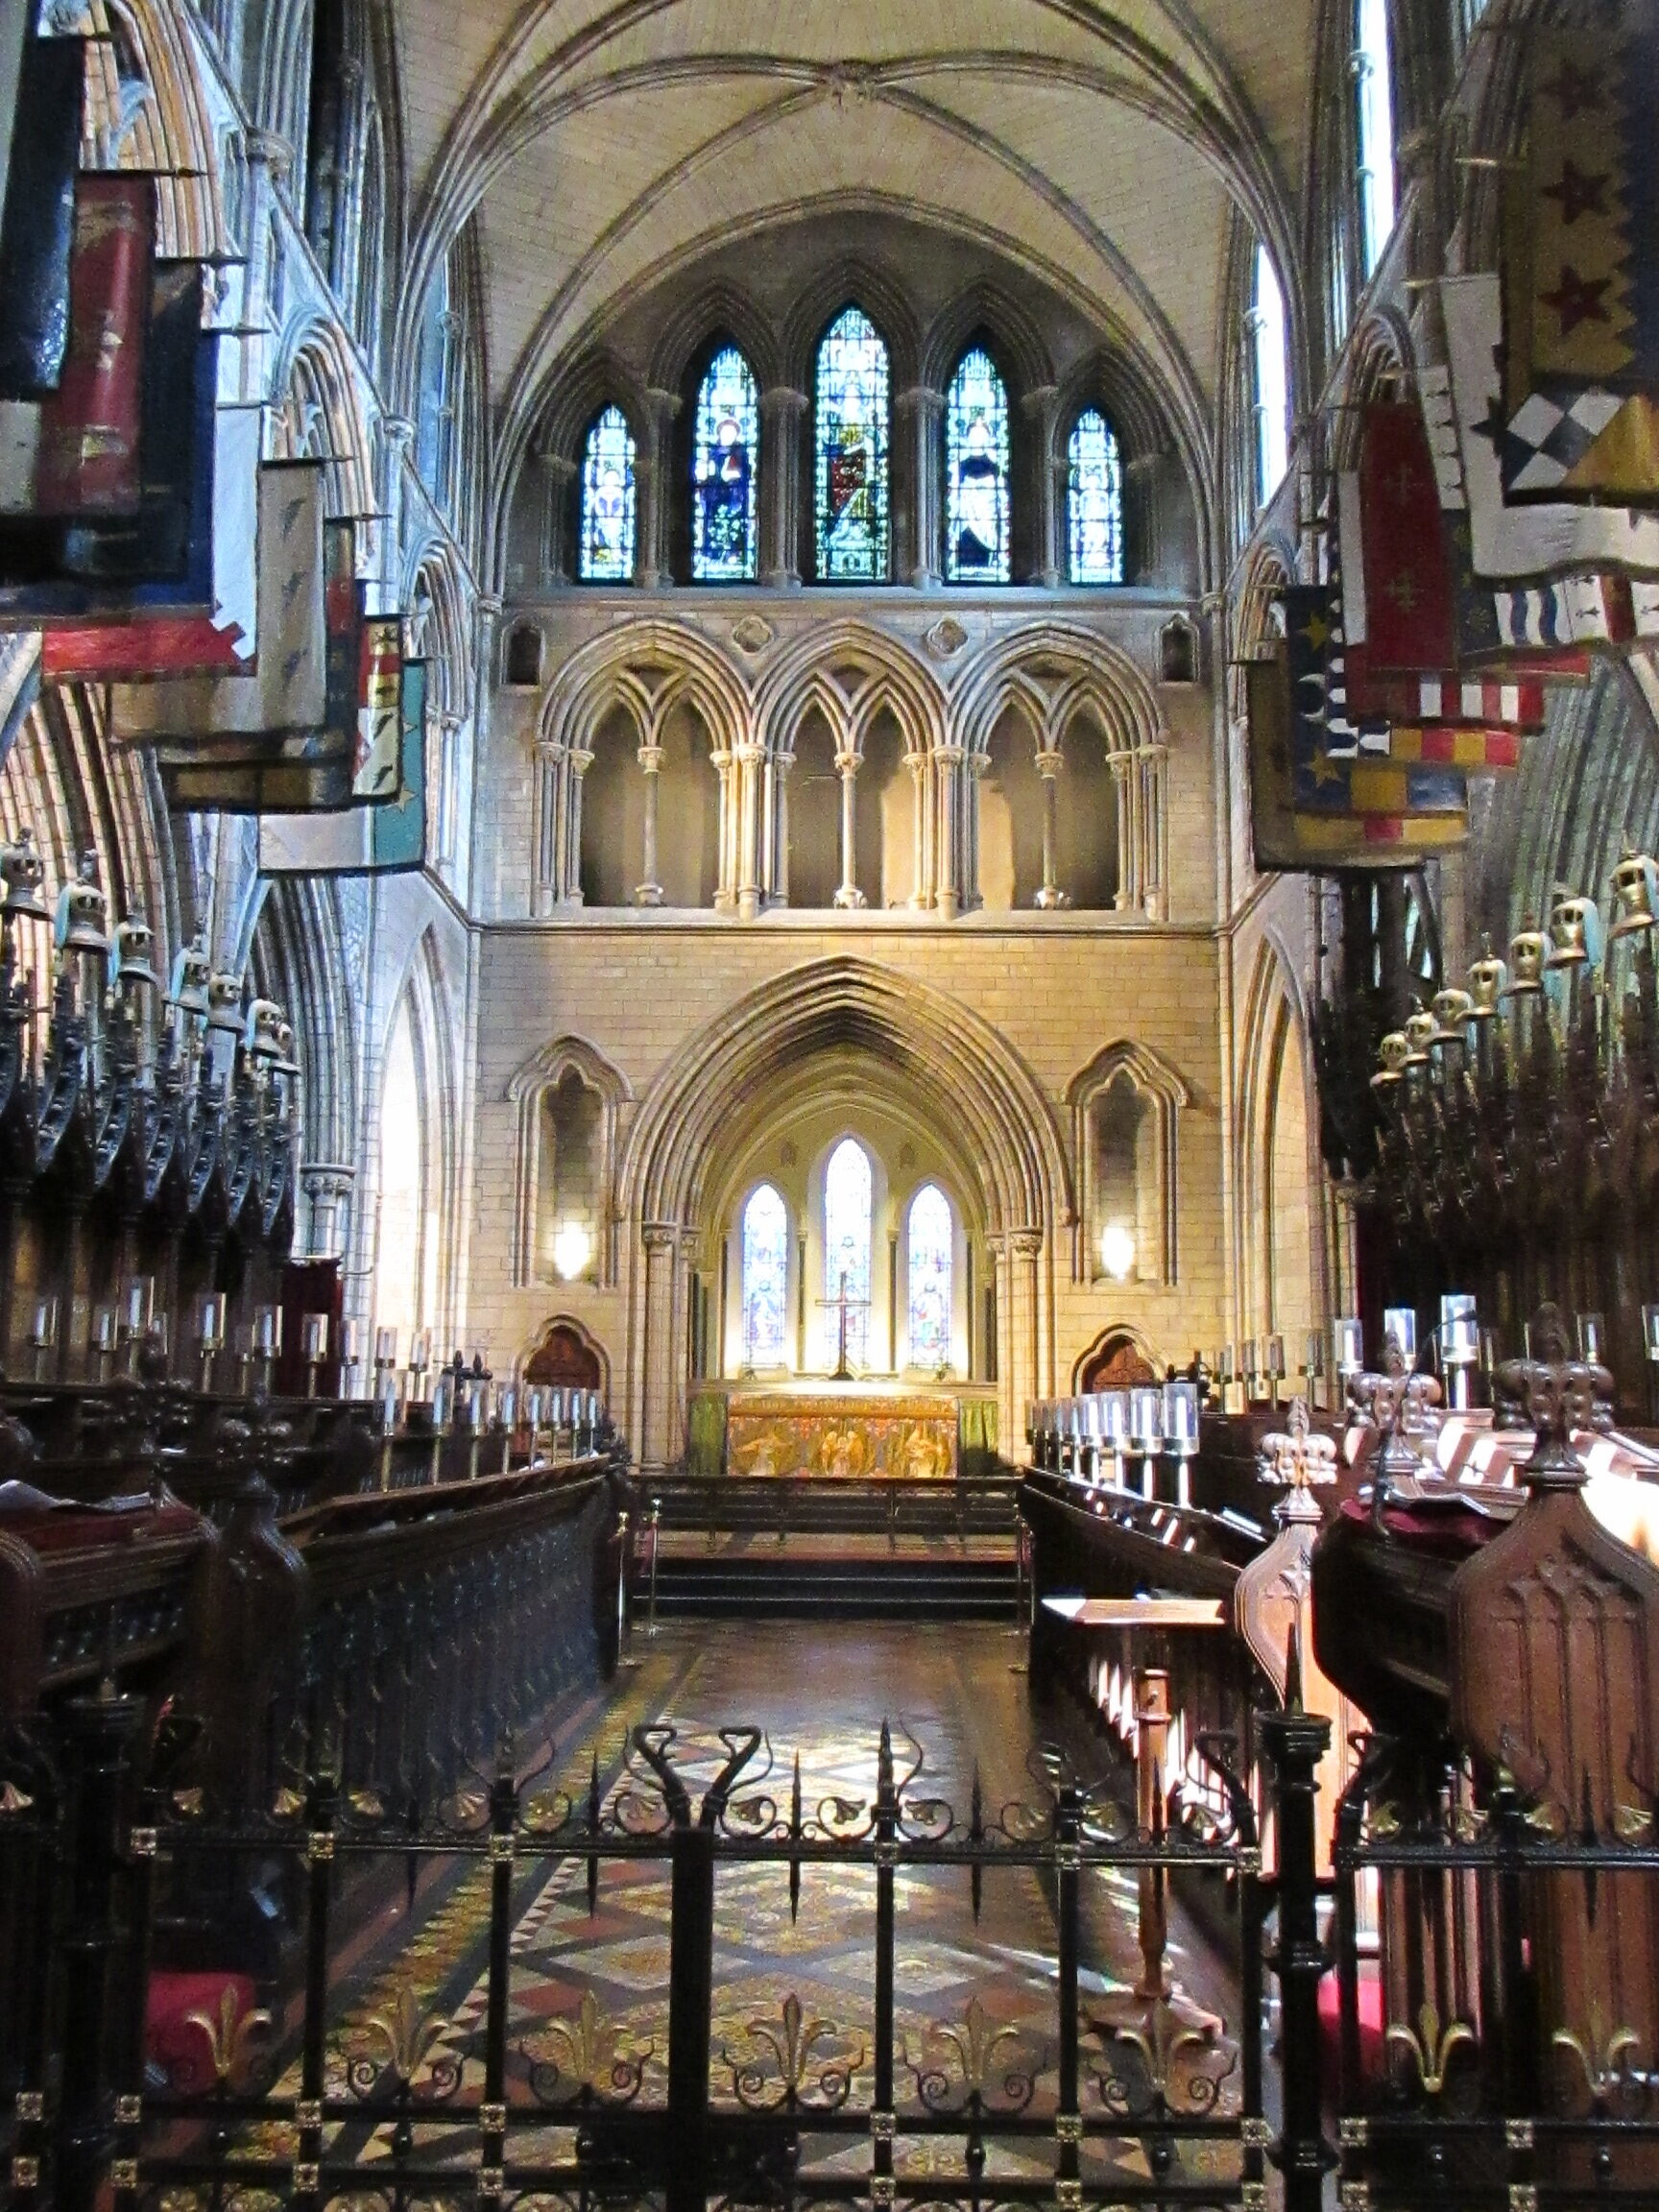 Chancel at St. Patrick's Cathedral, Dublin